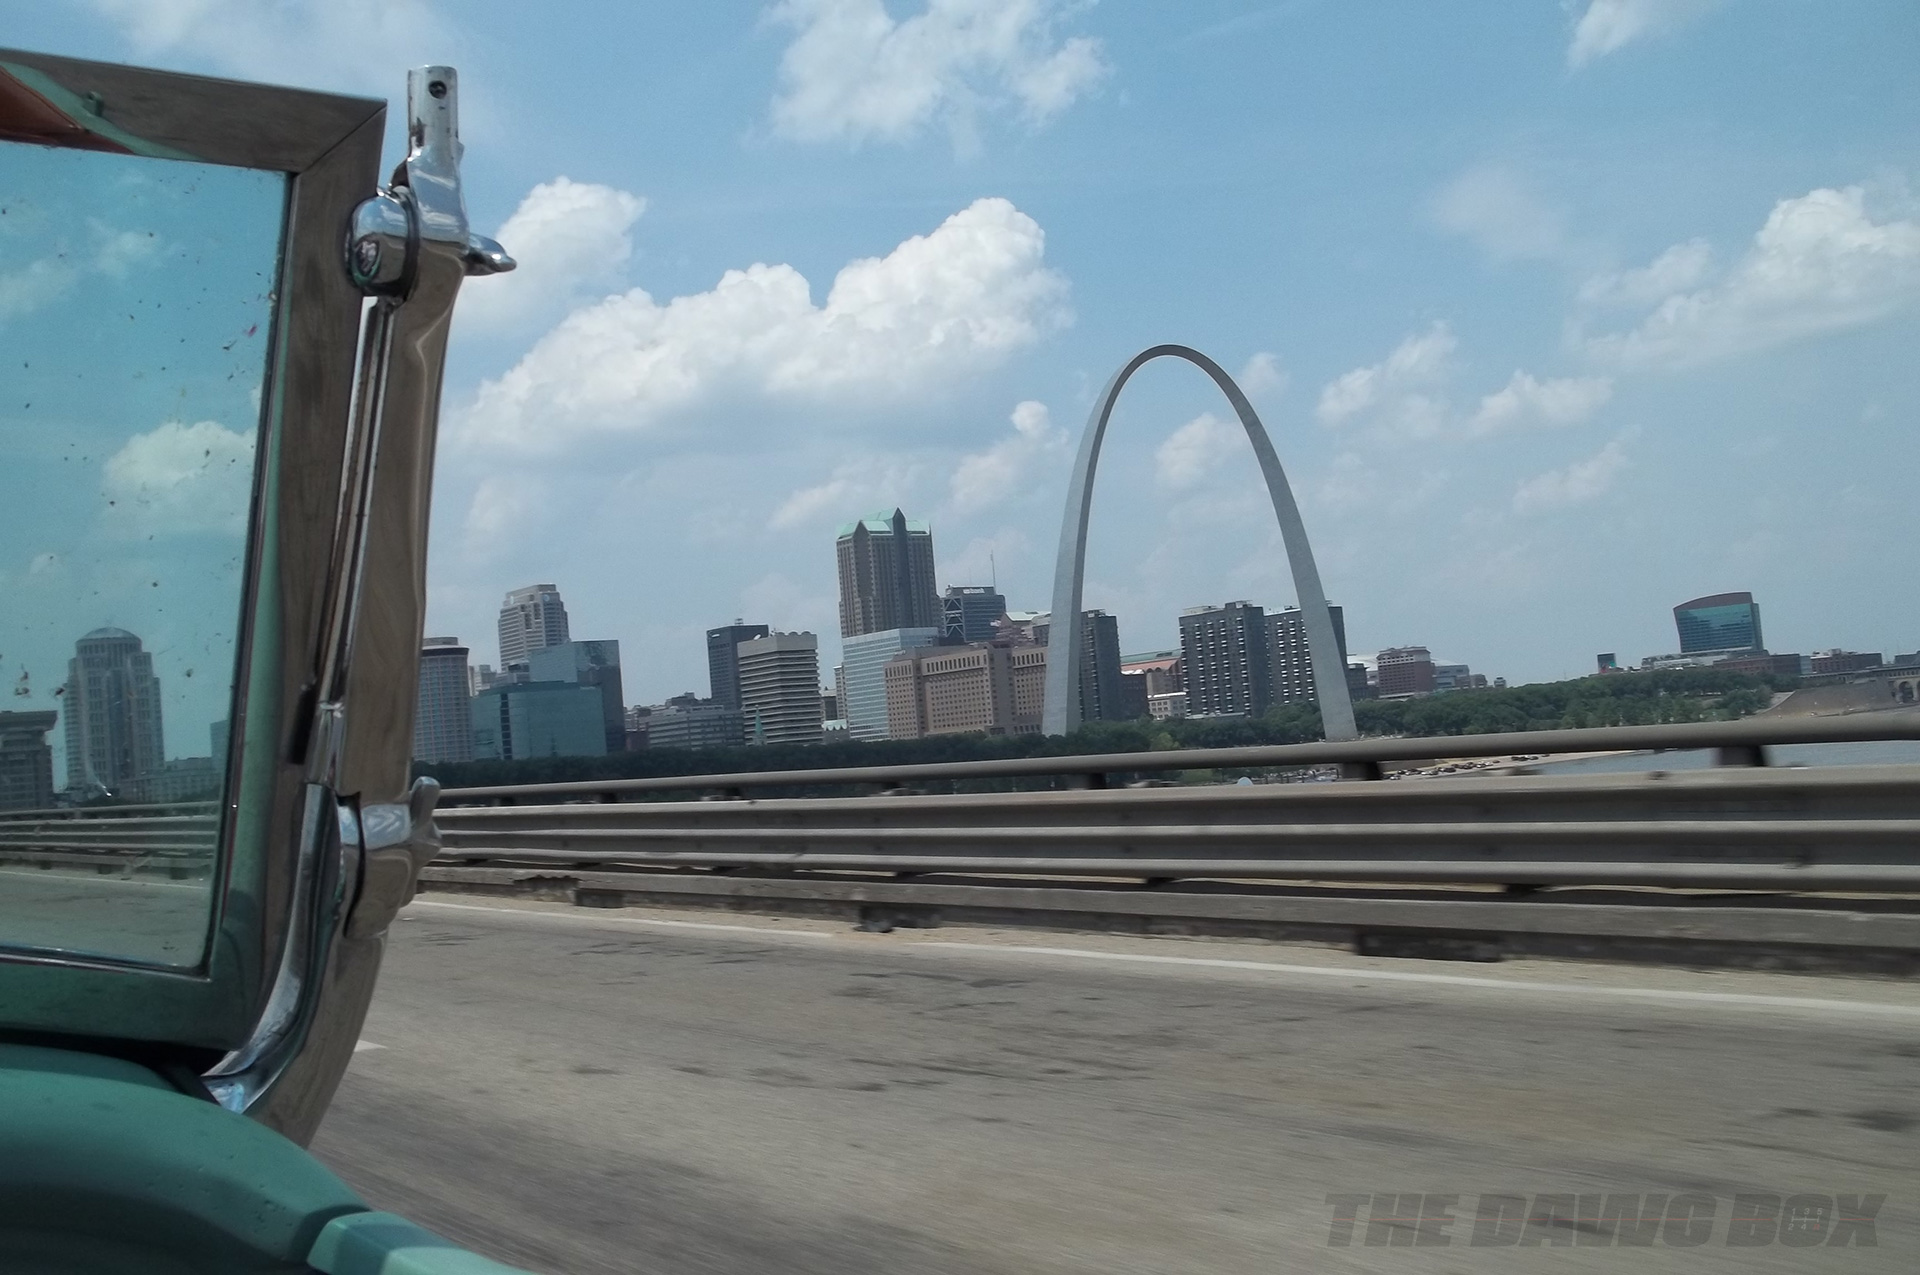 St. Louis, Missouri's Gateway Arch from the passenger side of Henry Astor's '32 Ford Roadster